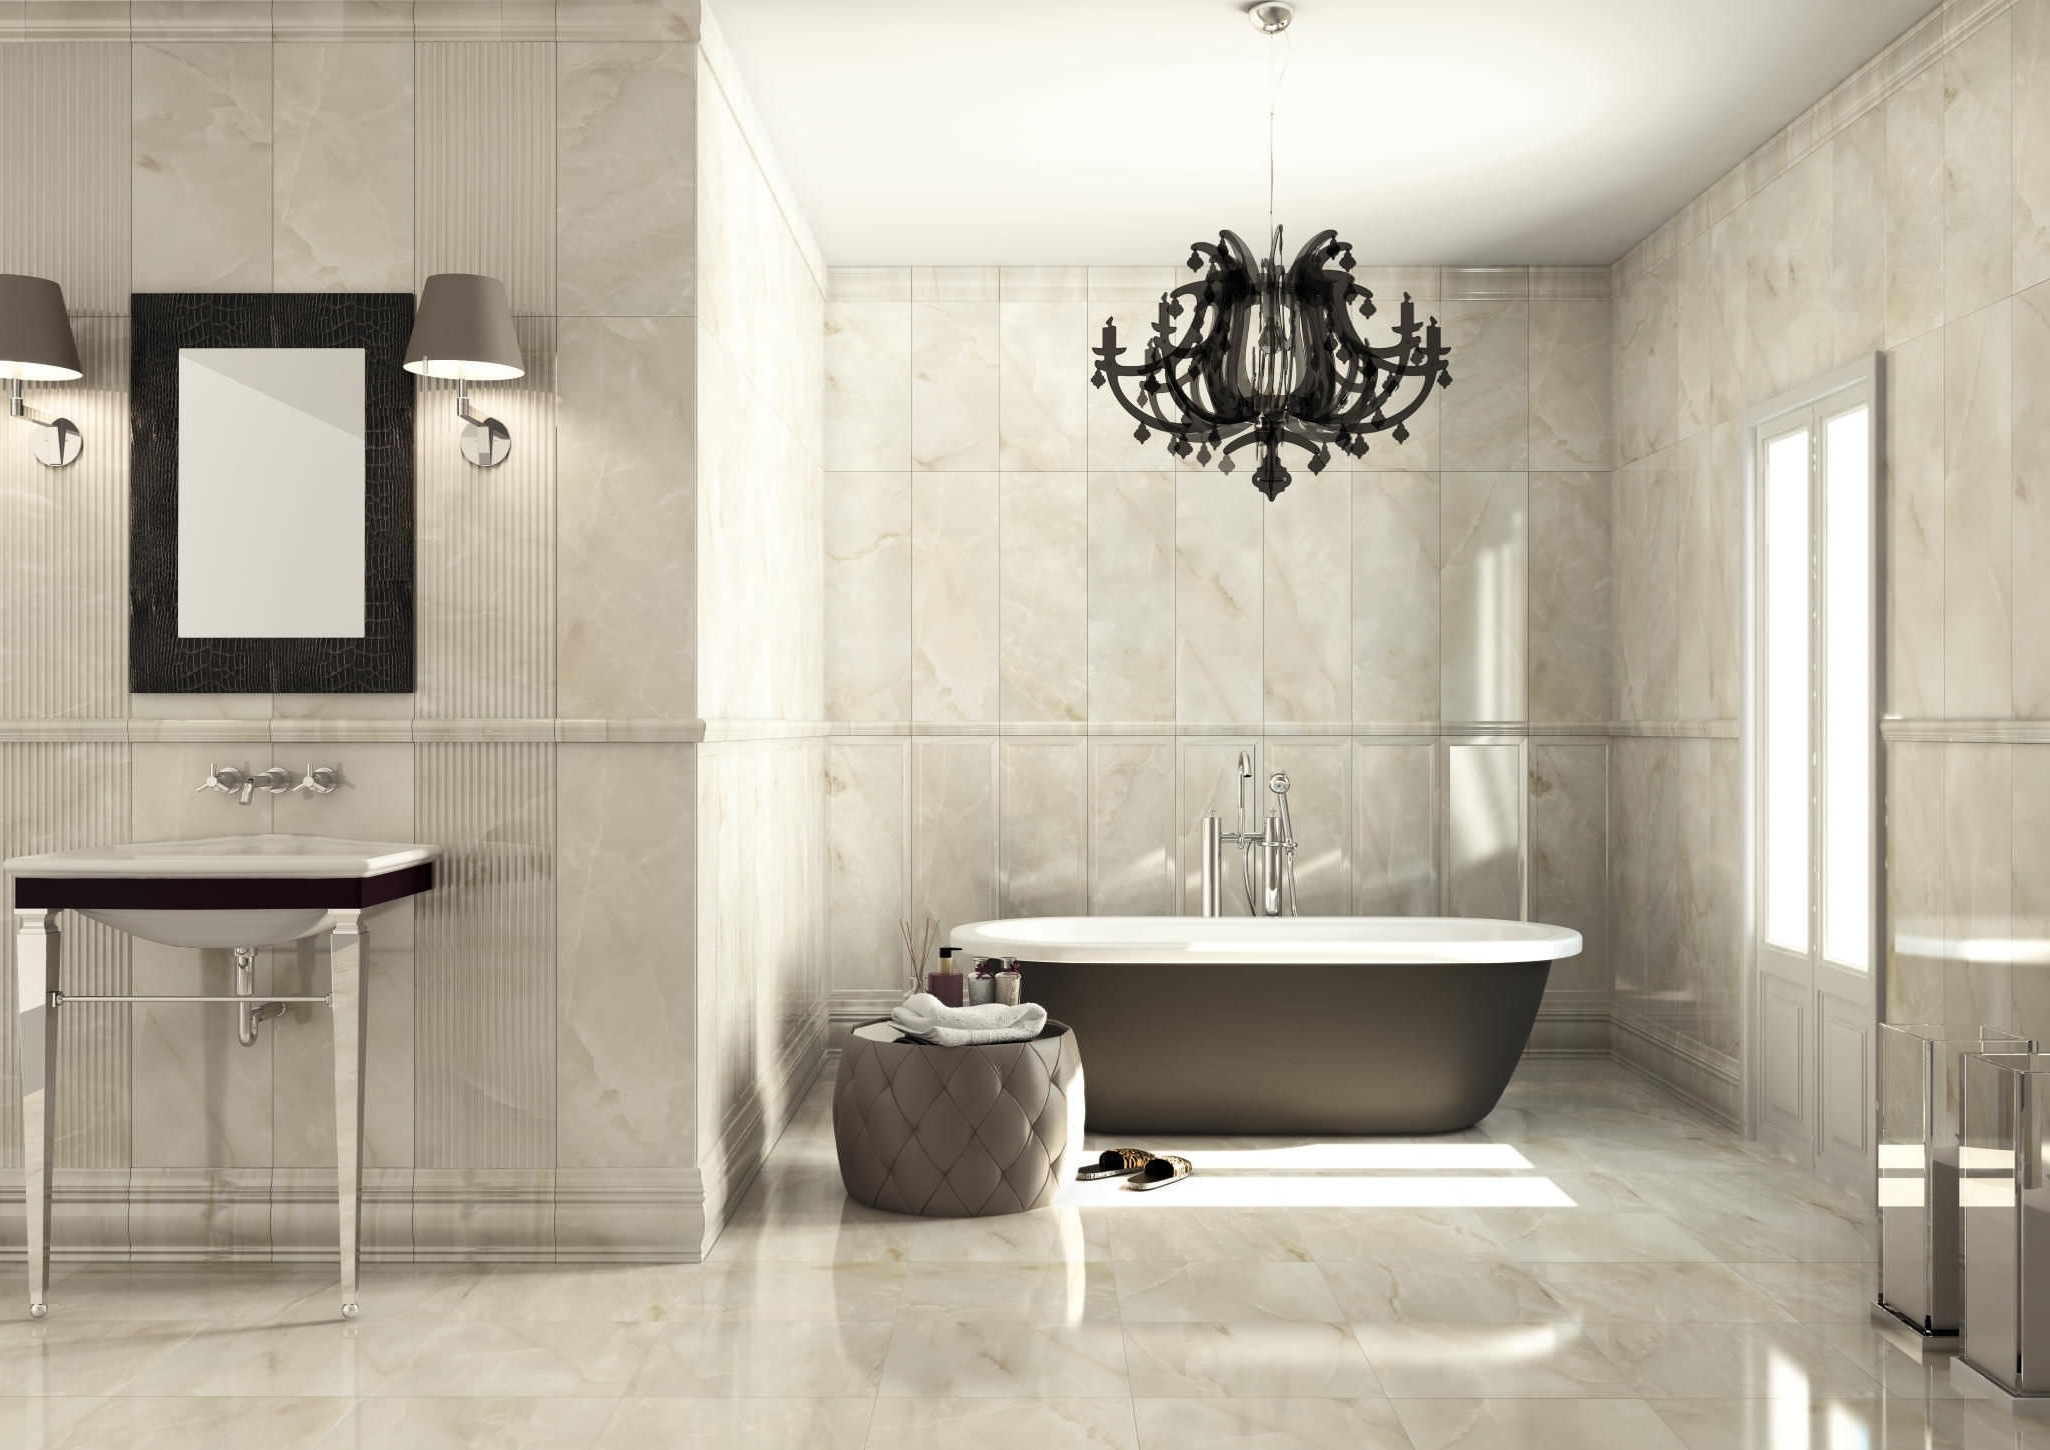 Bath With Glass Chandelier And Pedestal Tub Traditional With Regard To Bathroom Chandeliers (Image 9 of 15)